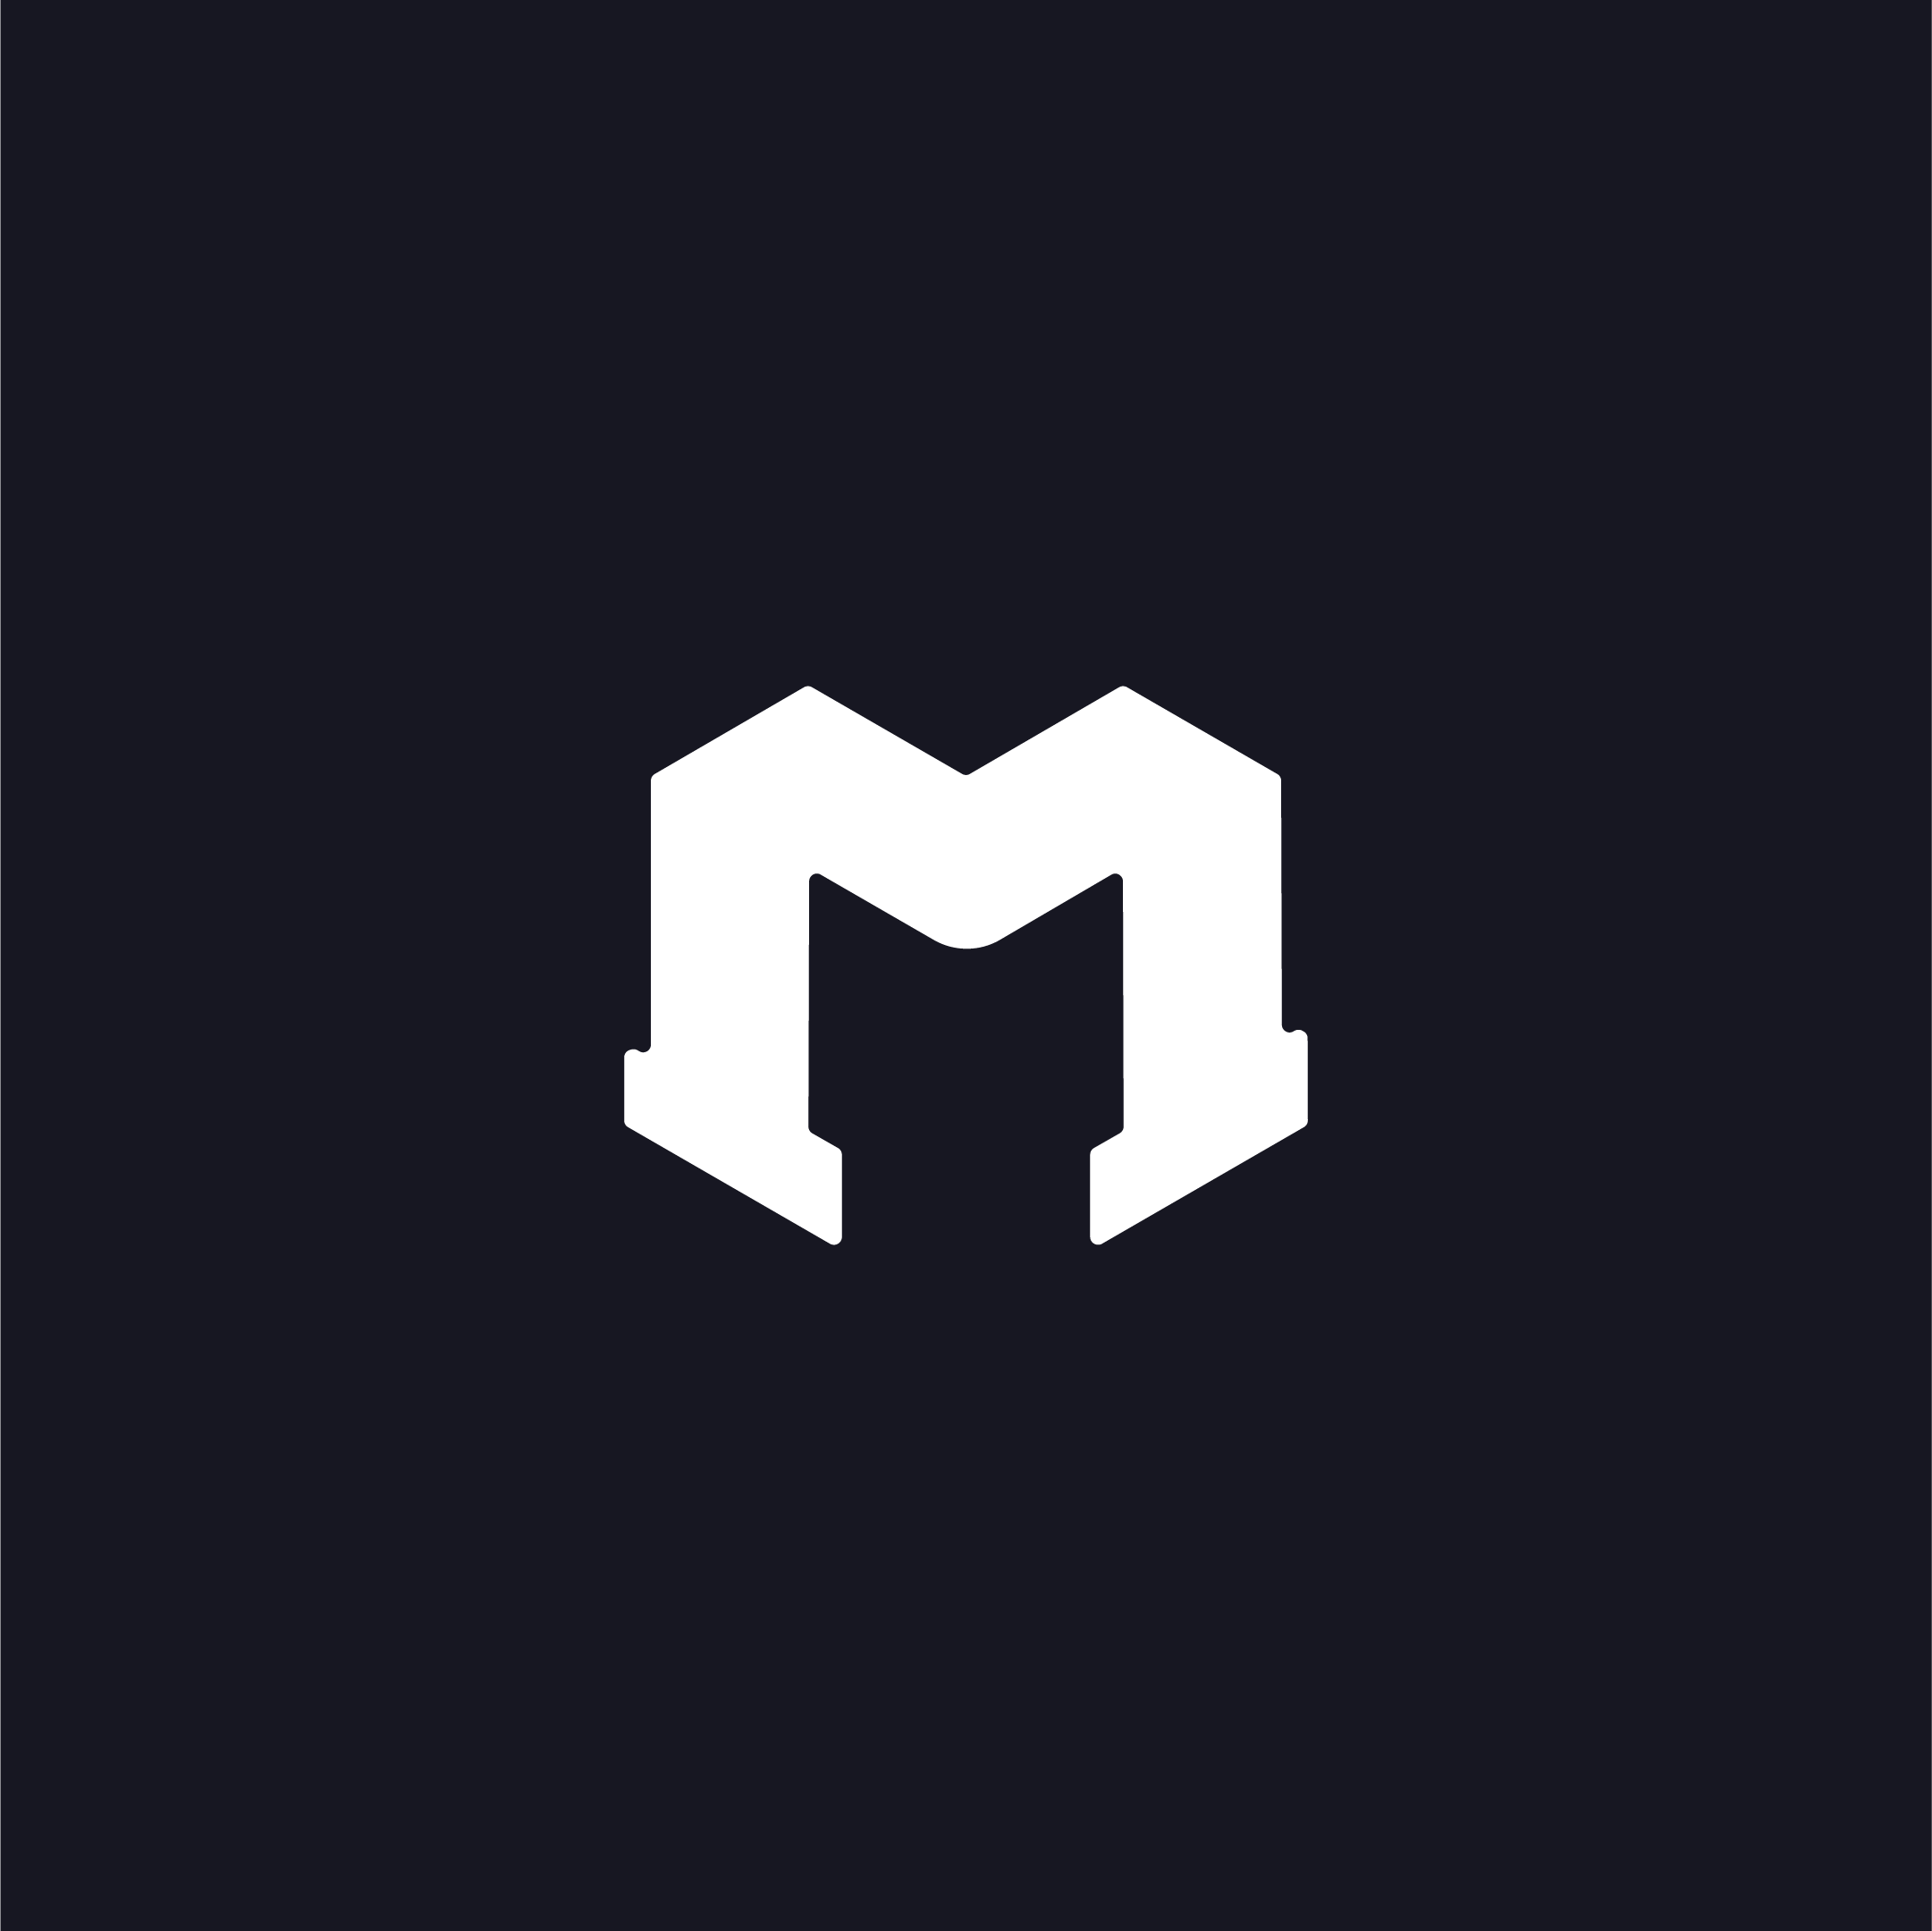 Emil Magnusson is a full-stack developer who mainly works behind the scenes on projects. With this in mind a vague connection to the github logo is included to connect to the full stack developer side. The M has a confident but sutble appeal to like a knight which reflects his workflow.